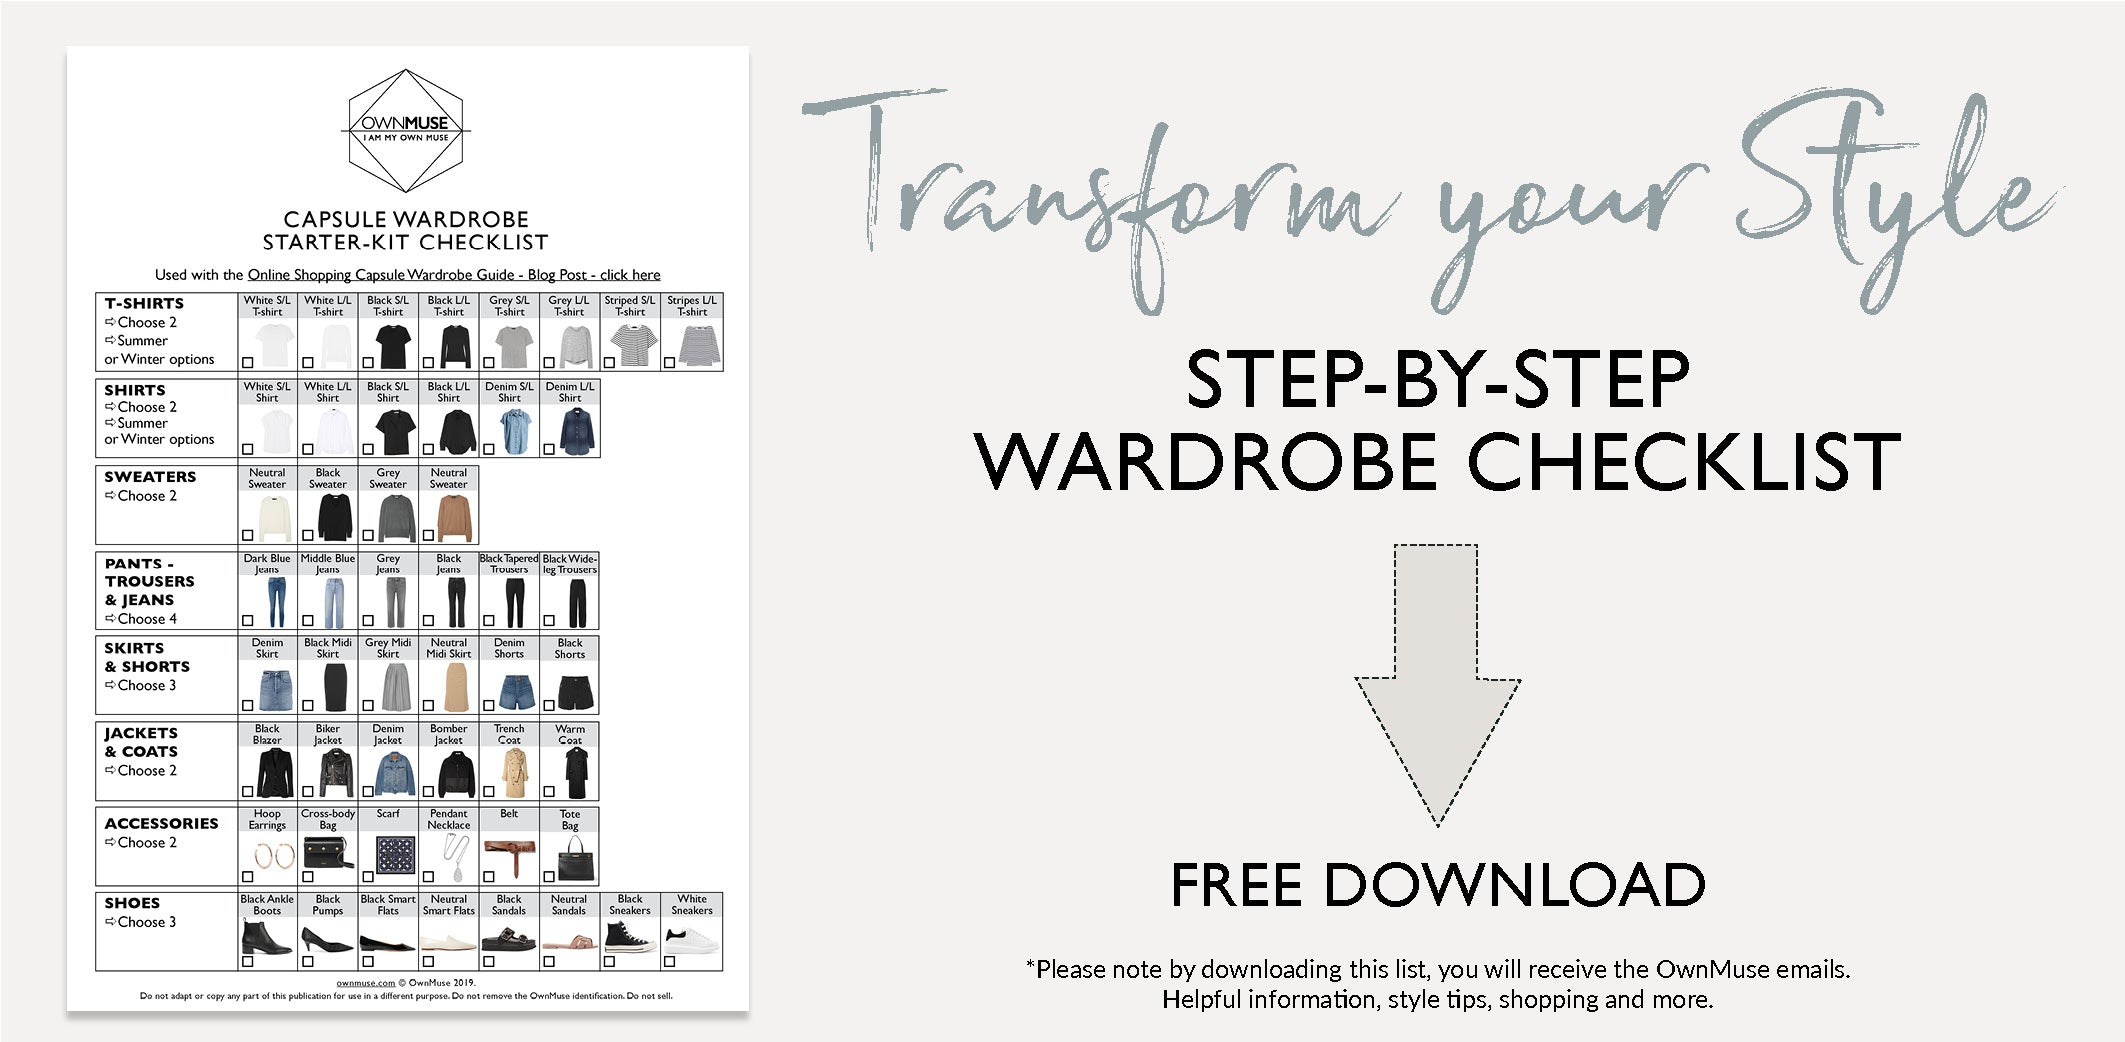 Capsule wardrobe starter-kit checklist and guide - free printable